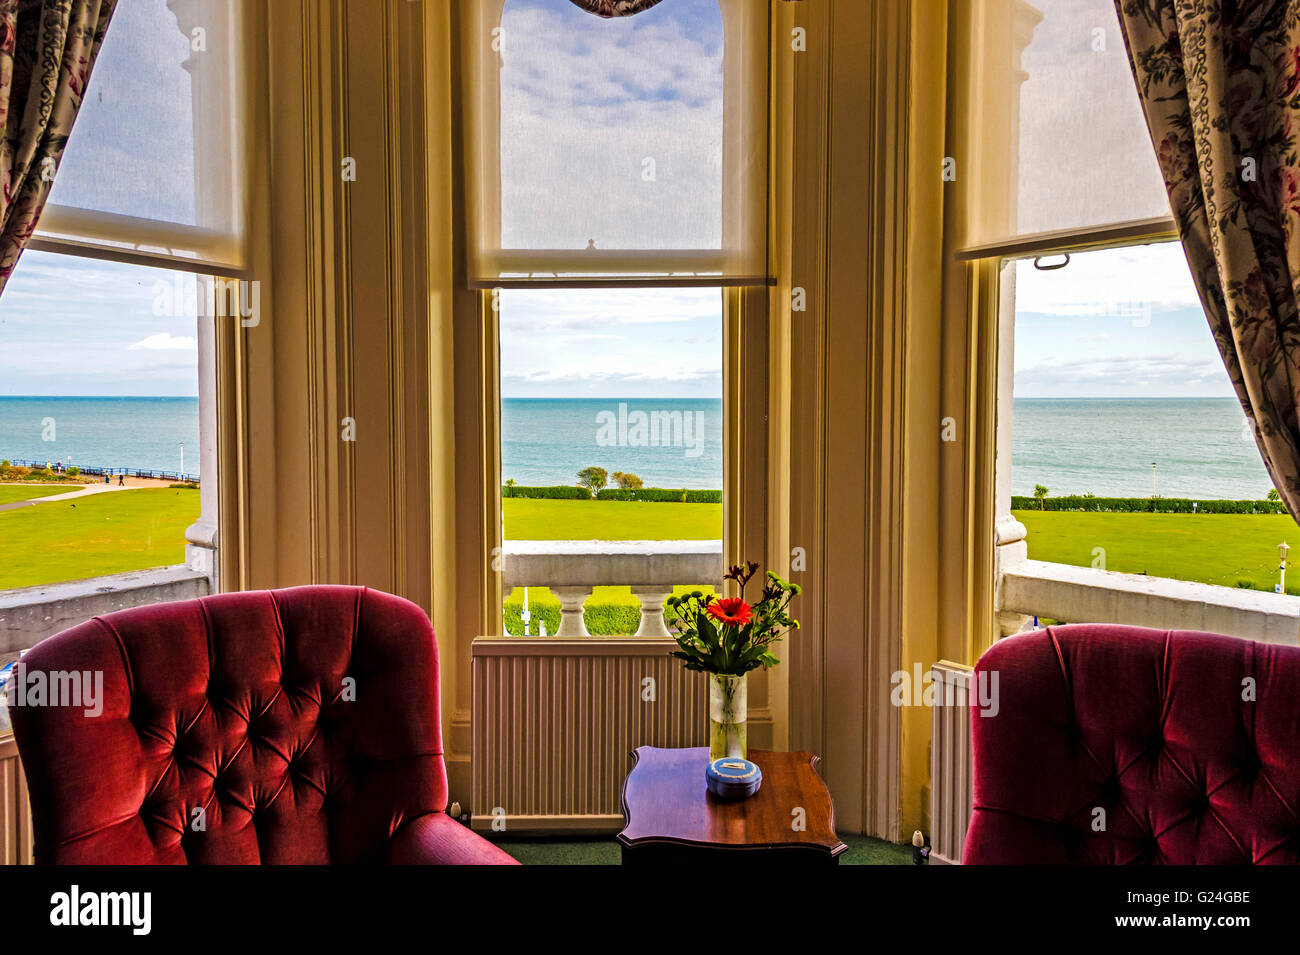 View onto the sea from the Grandhotel Eastbourne, room with a view; Blick aufs Meer vom Grandhotel Eastbourne Stock Photo